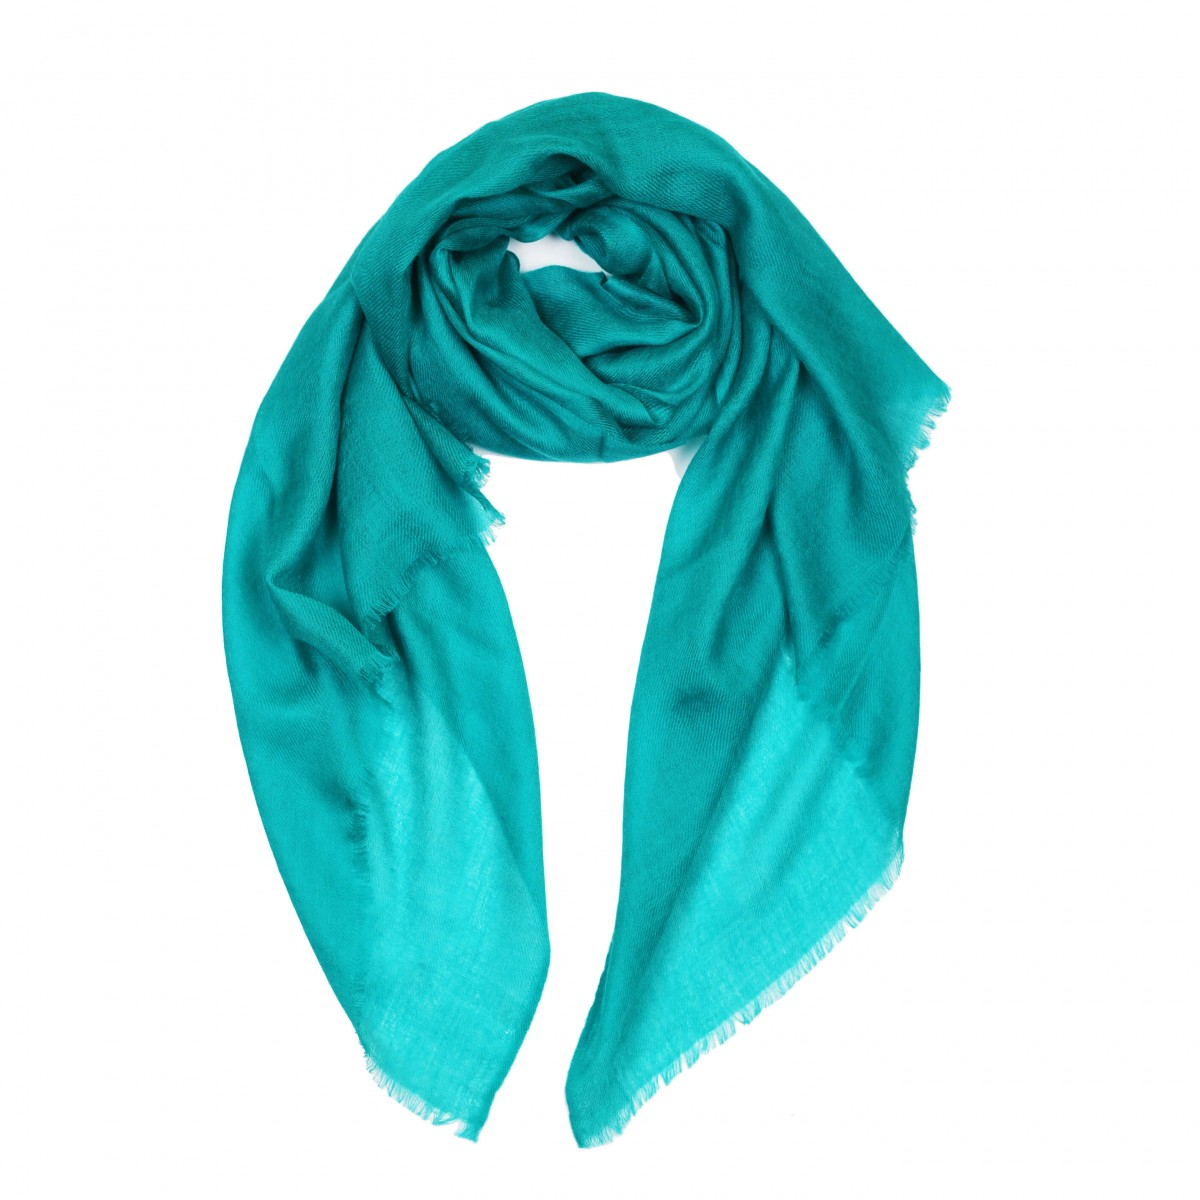 Sheer Pashmina Scarf - Adriatic Sea Blue